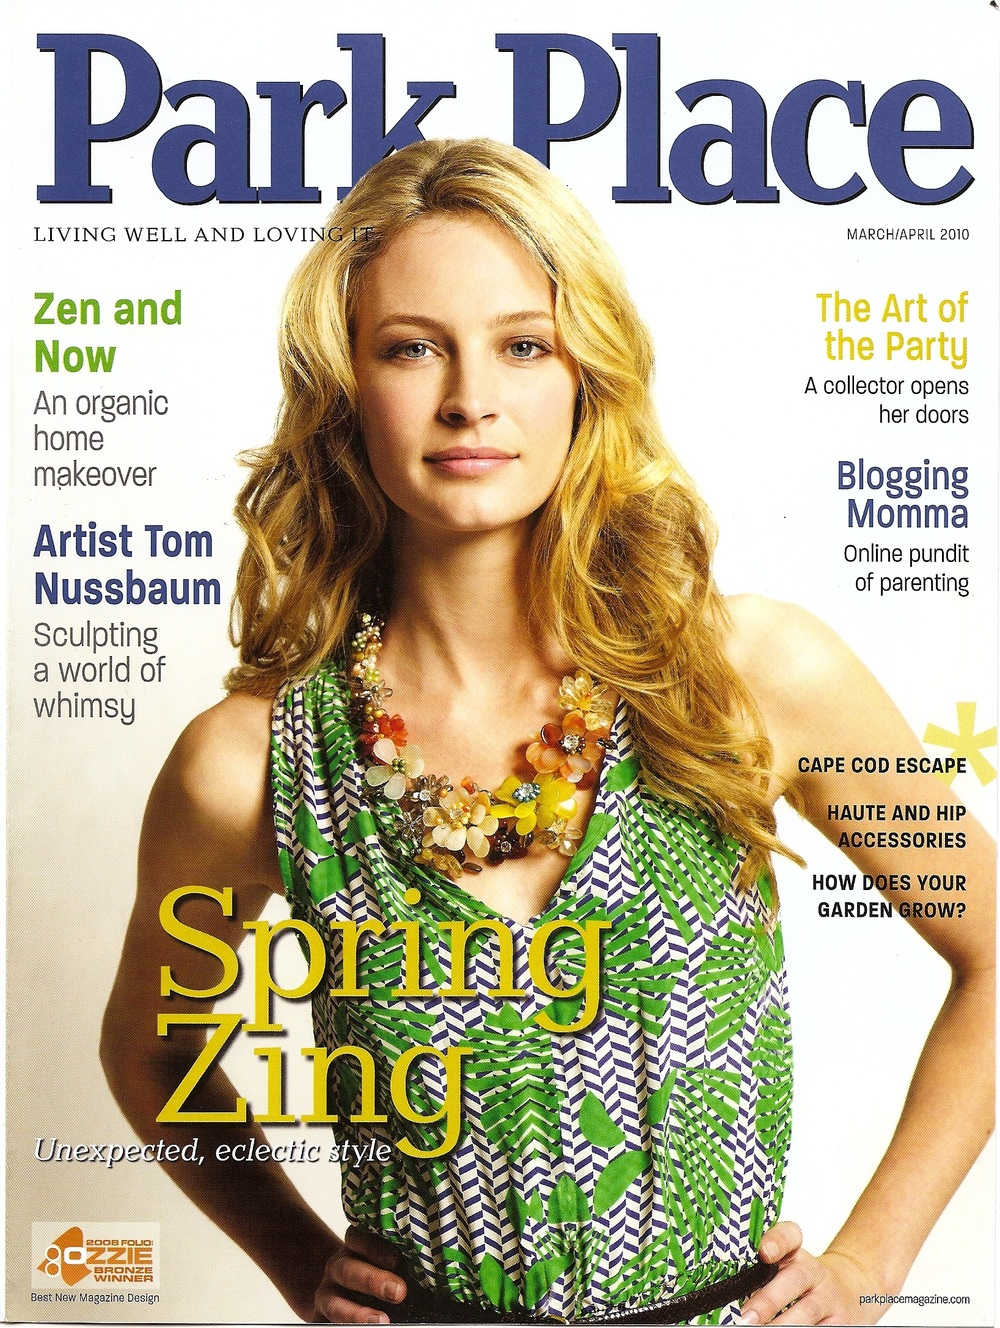 parkplace_march_april_2010_cover.jpg